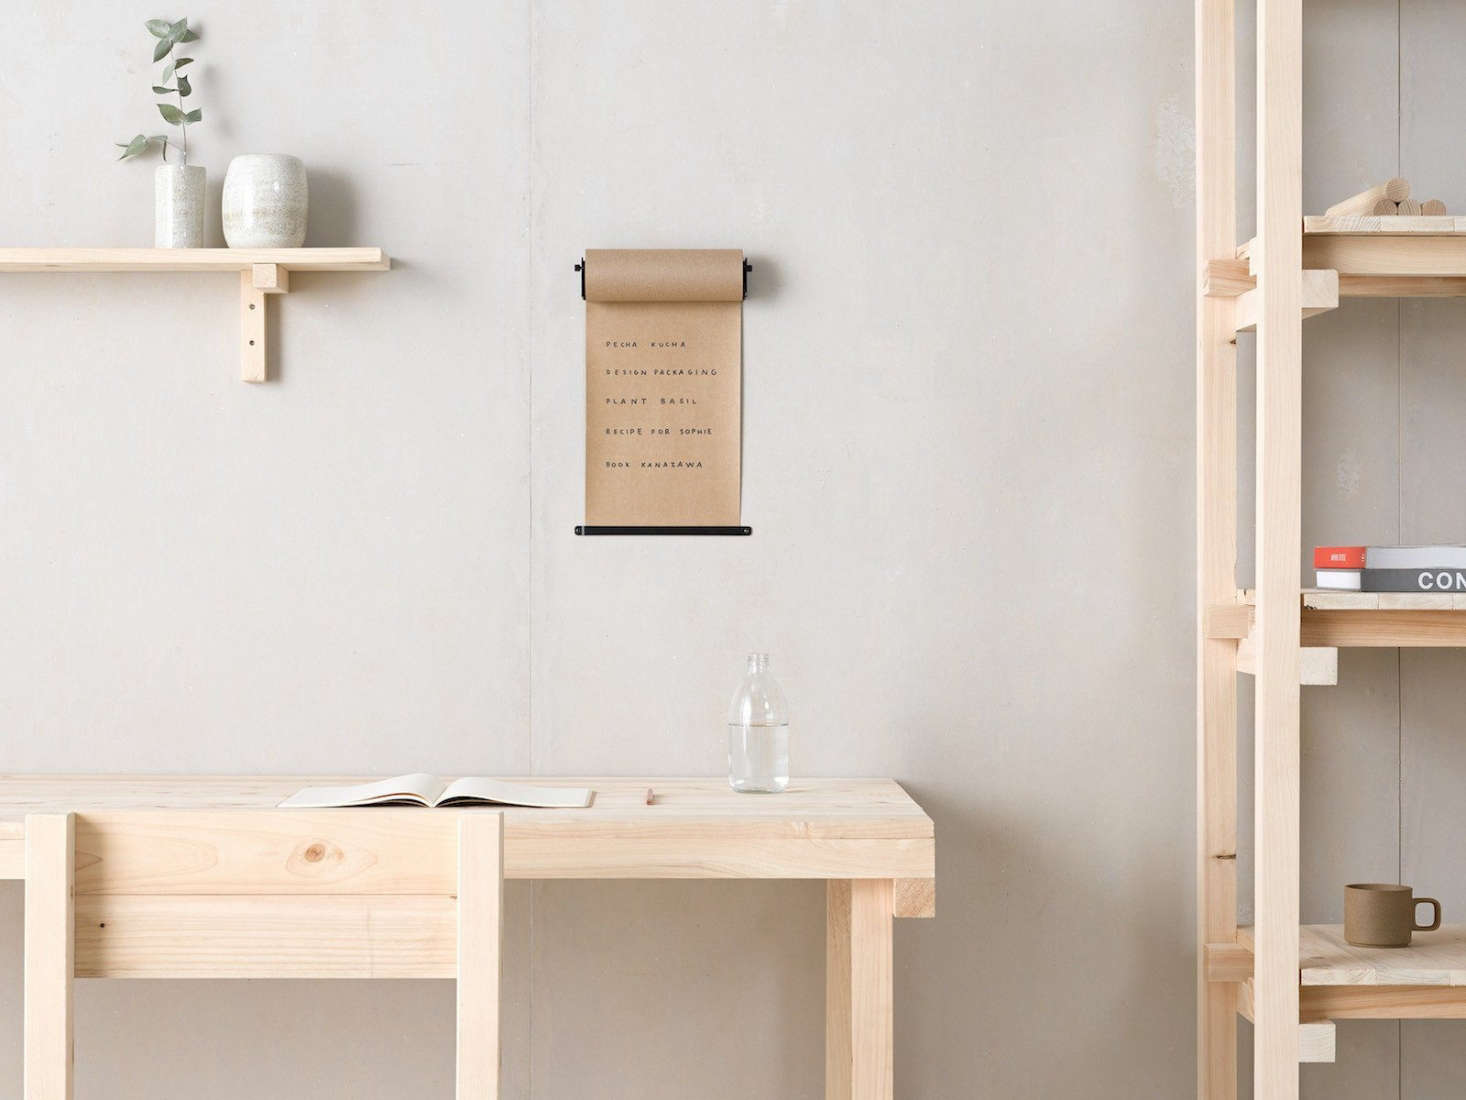 Margot rounded up the most stylish vintage-inspired office accessories in 10 Easy Pieces: Old-School Office Supplies to Keep You Organized, including this wall-hung roll of kraft paper by George & Willy. (They all work great in the kitchen as well.)